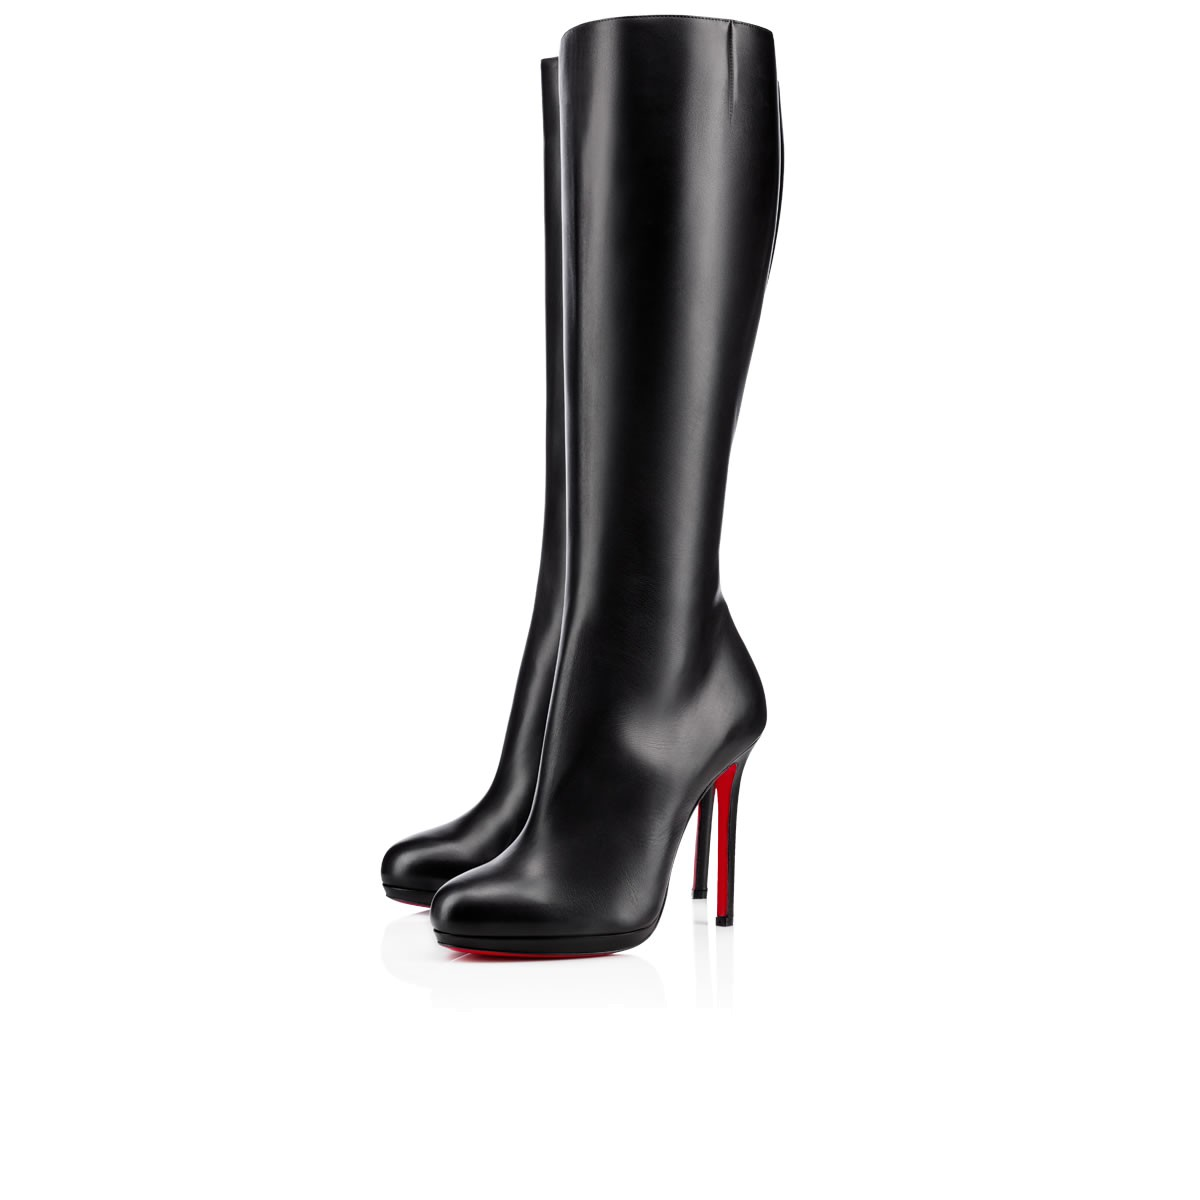 186c5335217 Christian Louboutin Botalili Tall Red Sole Boot In Black | ModeSens